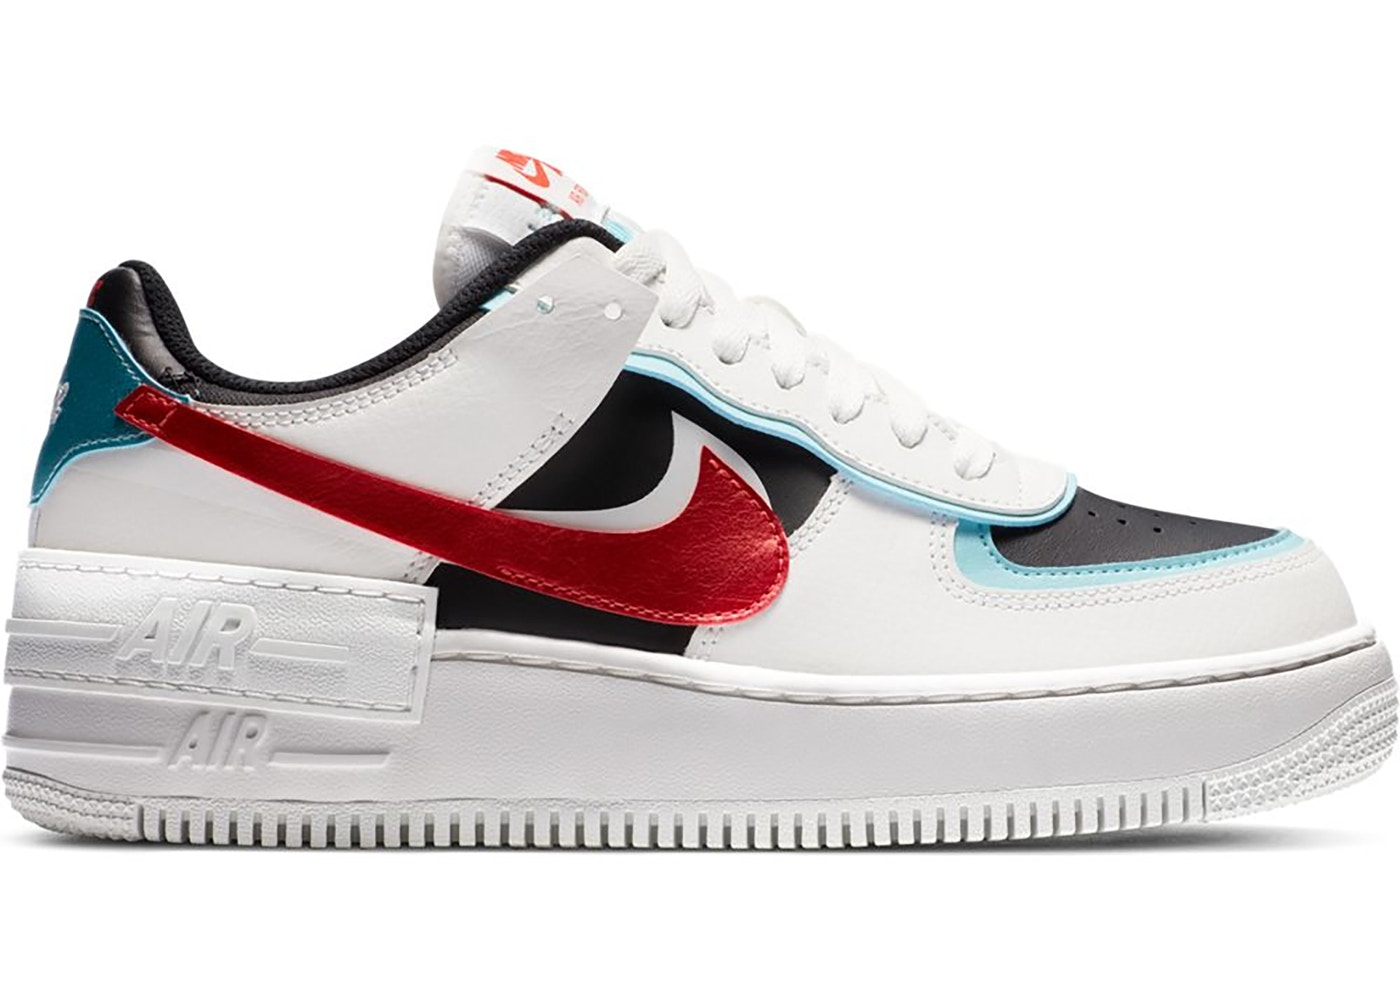 Nike Air Force 1 Shadow Bleached Aqua Chile Red W Da4291 100 The model, which is a women's exclusive, sets an example for. nike air force 1 shadow bleached aqua chile red w